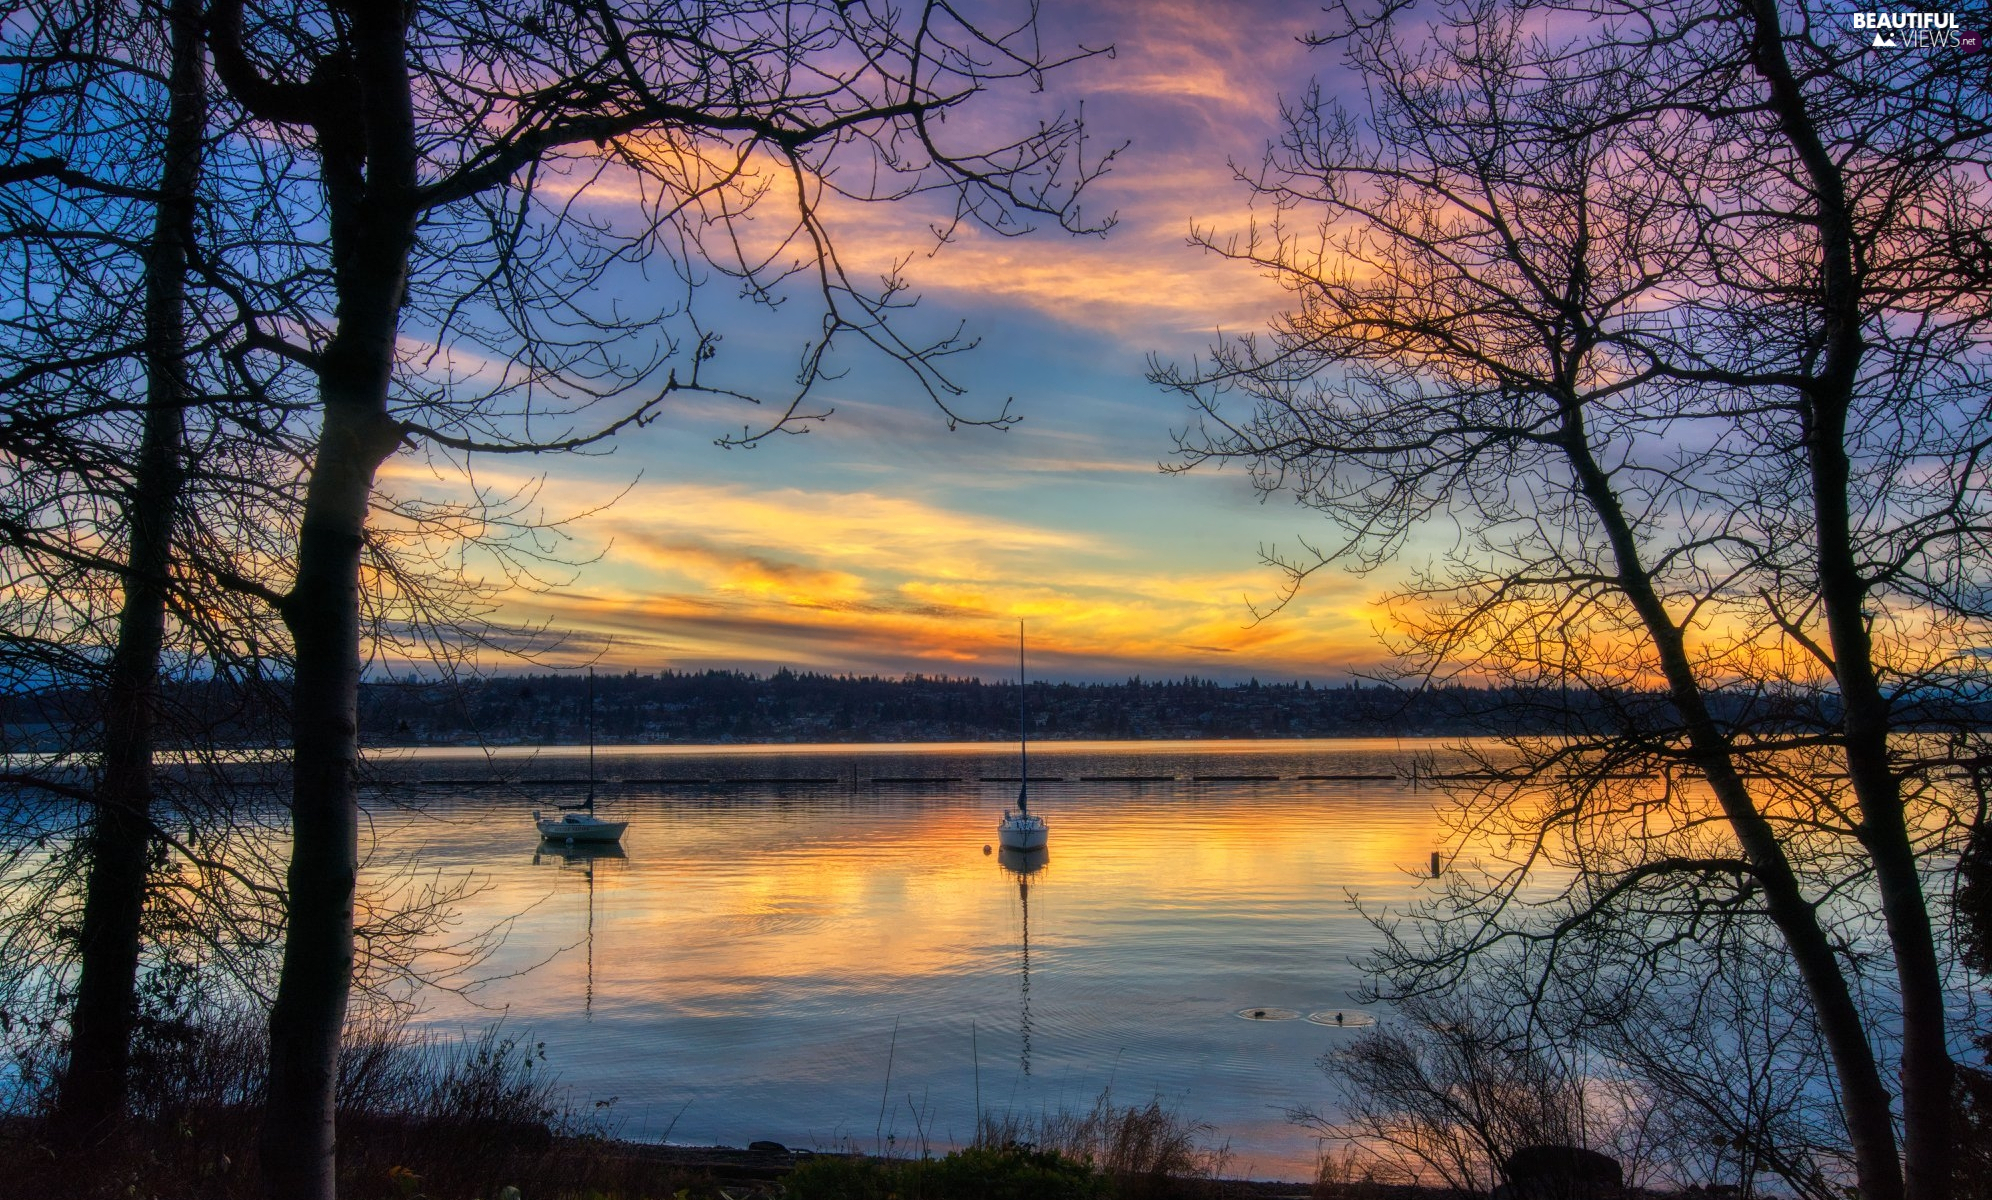 Sunrise, Sailboats, trees, viewes, lake